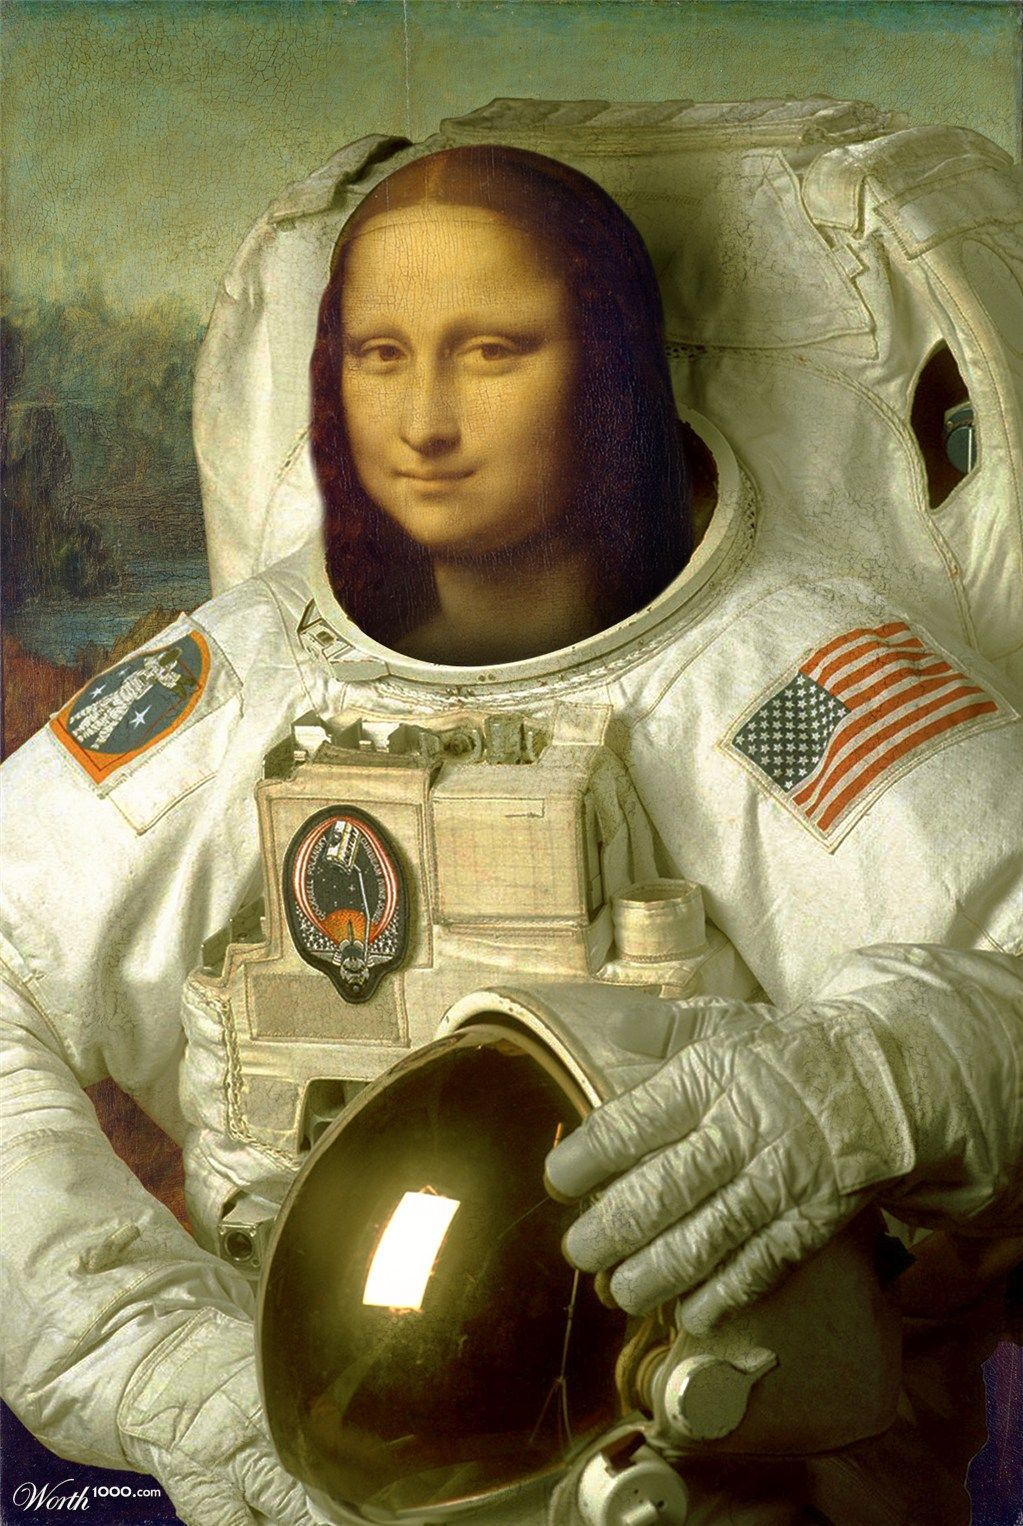 mona astronaut worth contests monadiva mona lisa open photoshop contest is now closed the contest received 45 submissions from 36 creatives